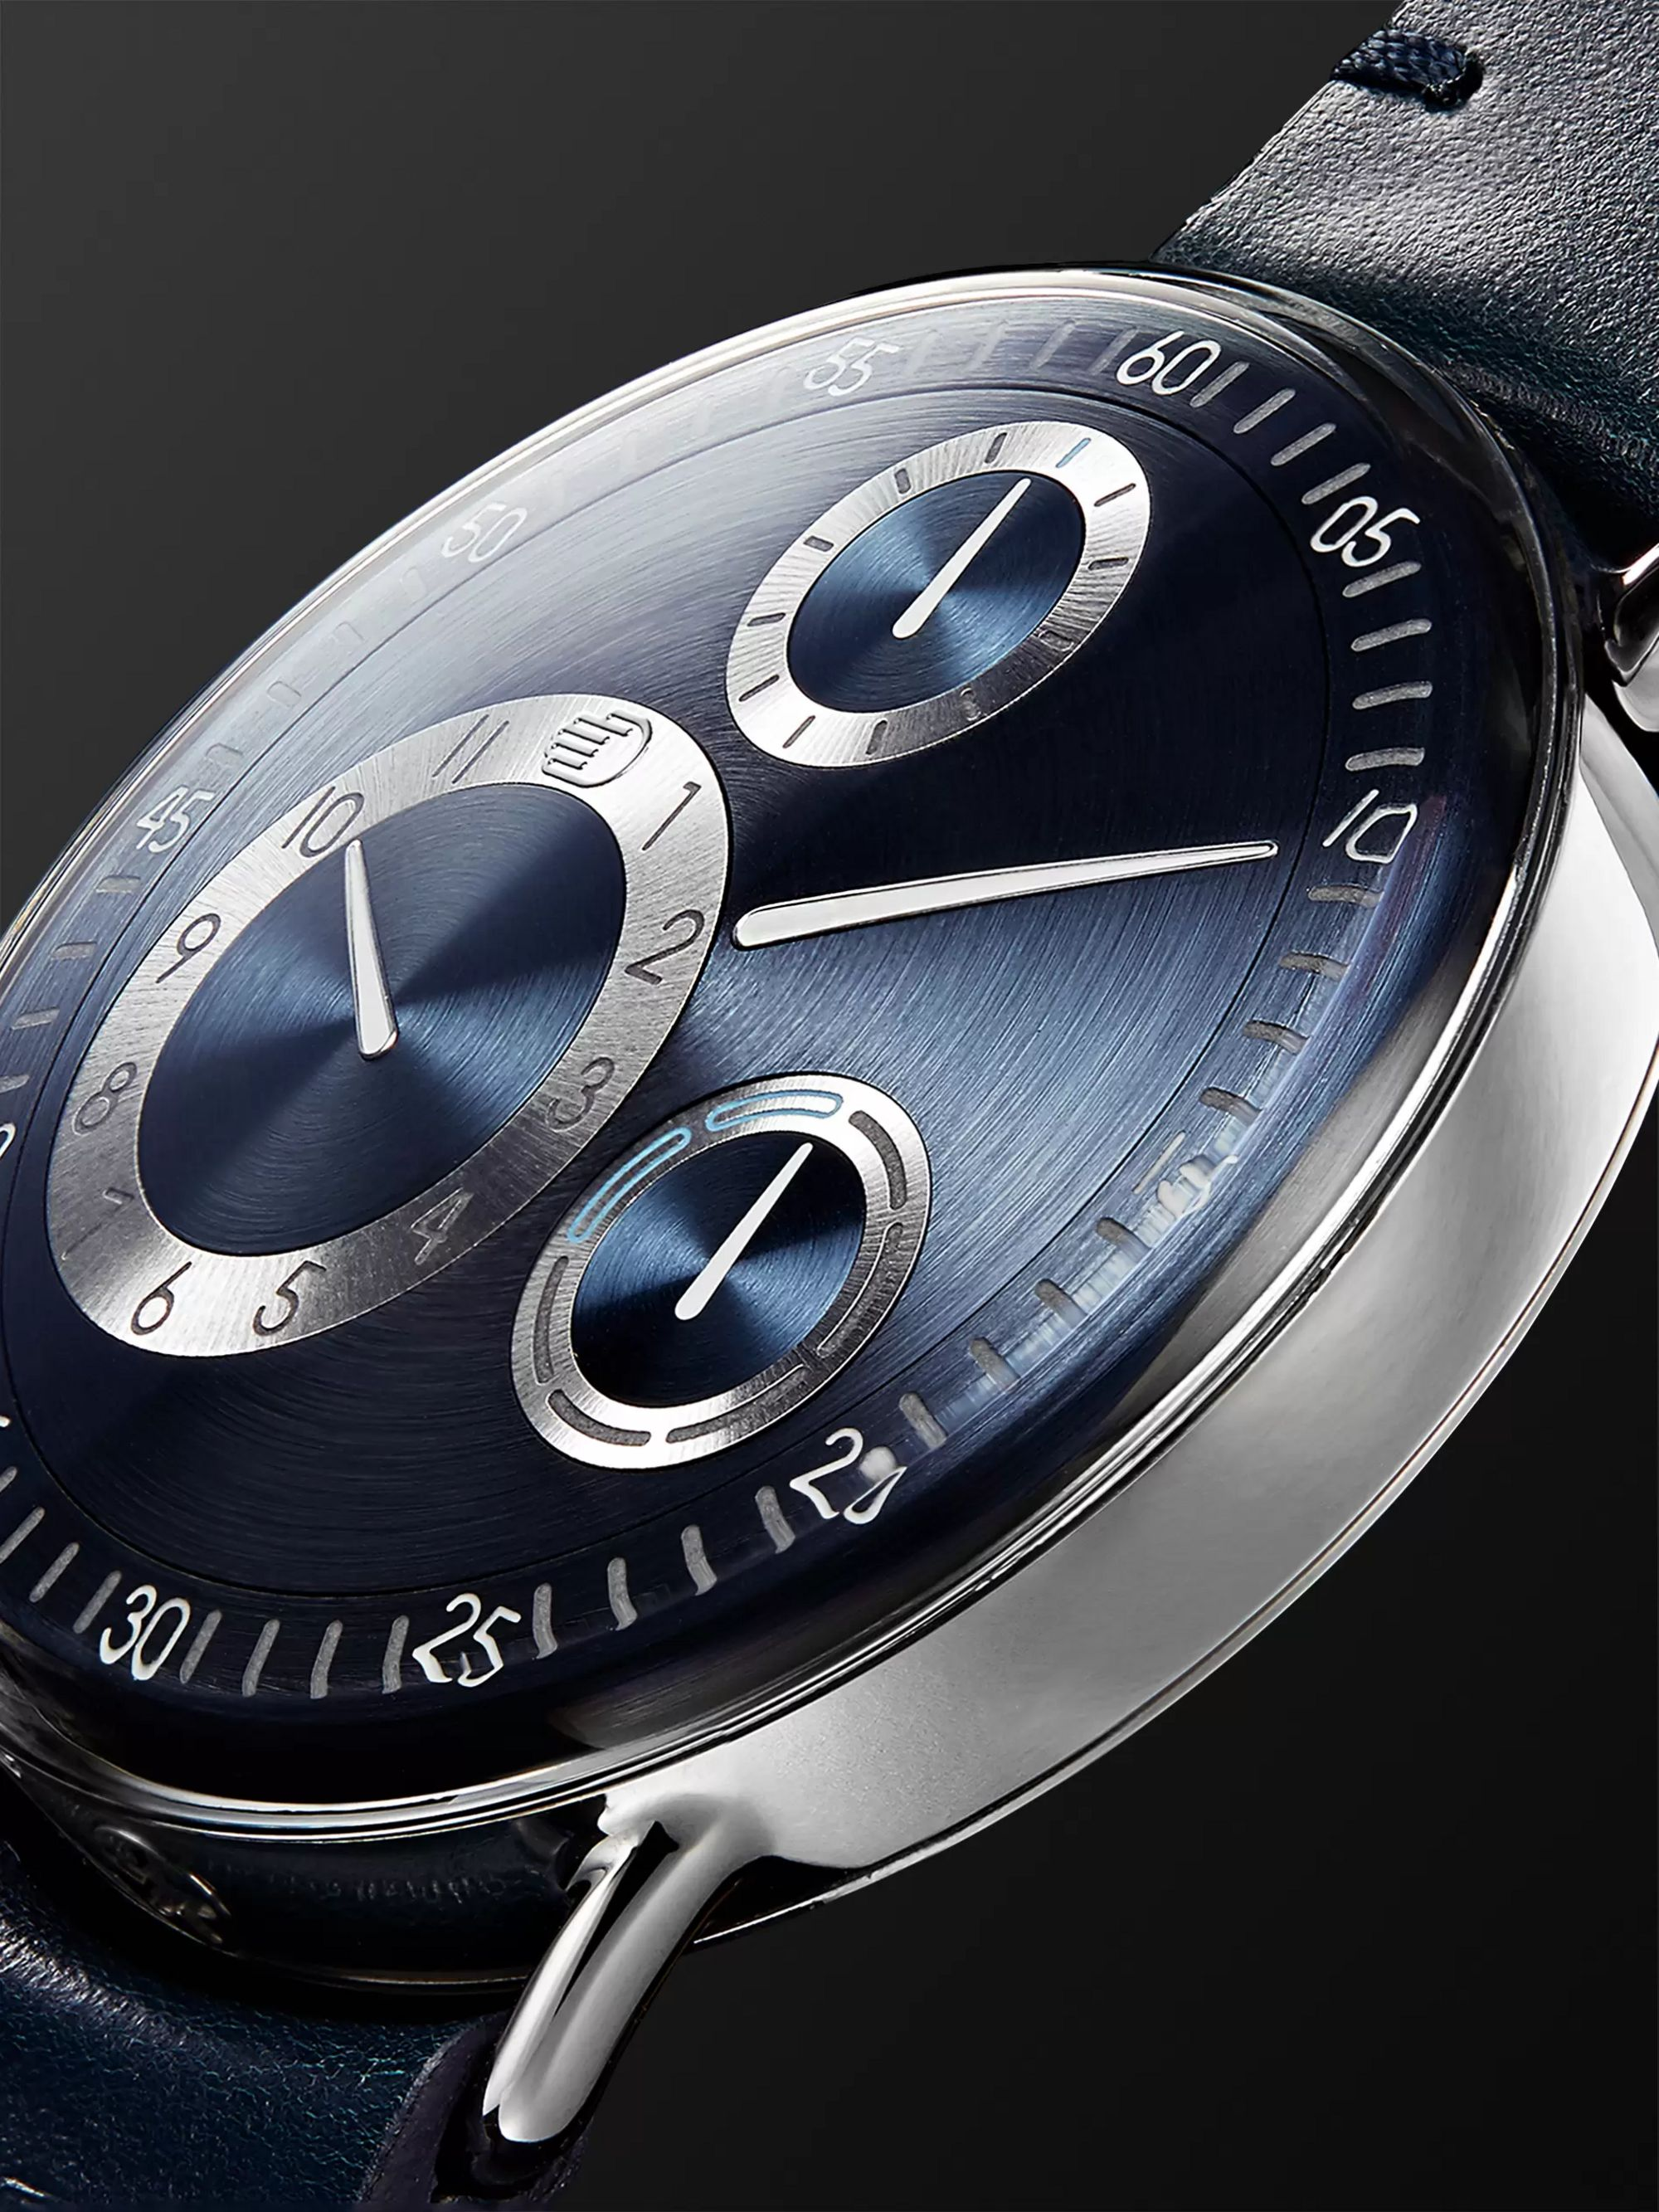 Ressence Type 1 MRP Mechanical 42mm Titanium and Leather Watch, Ref. No. TYPE 1N